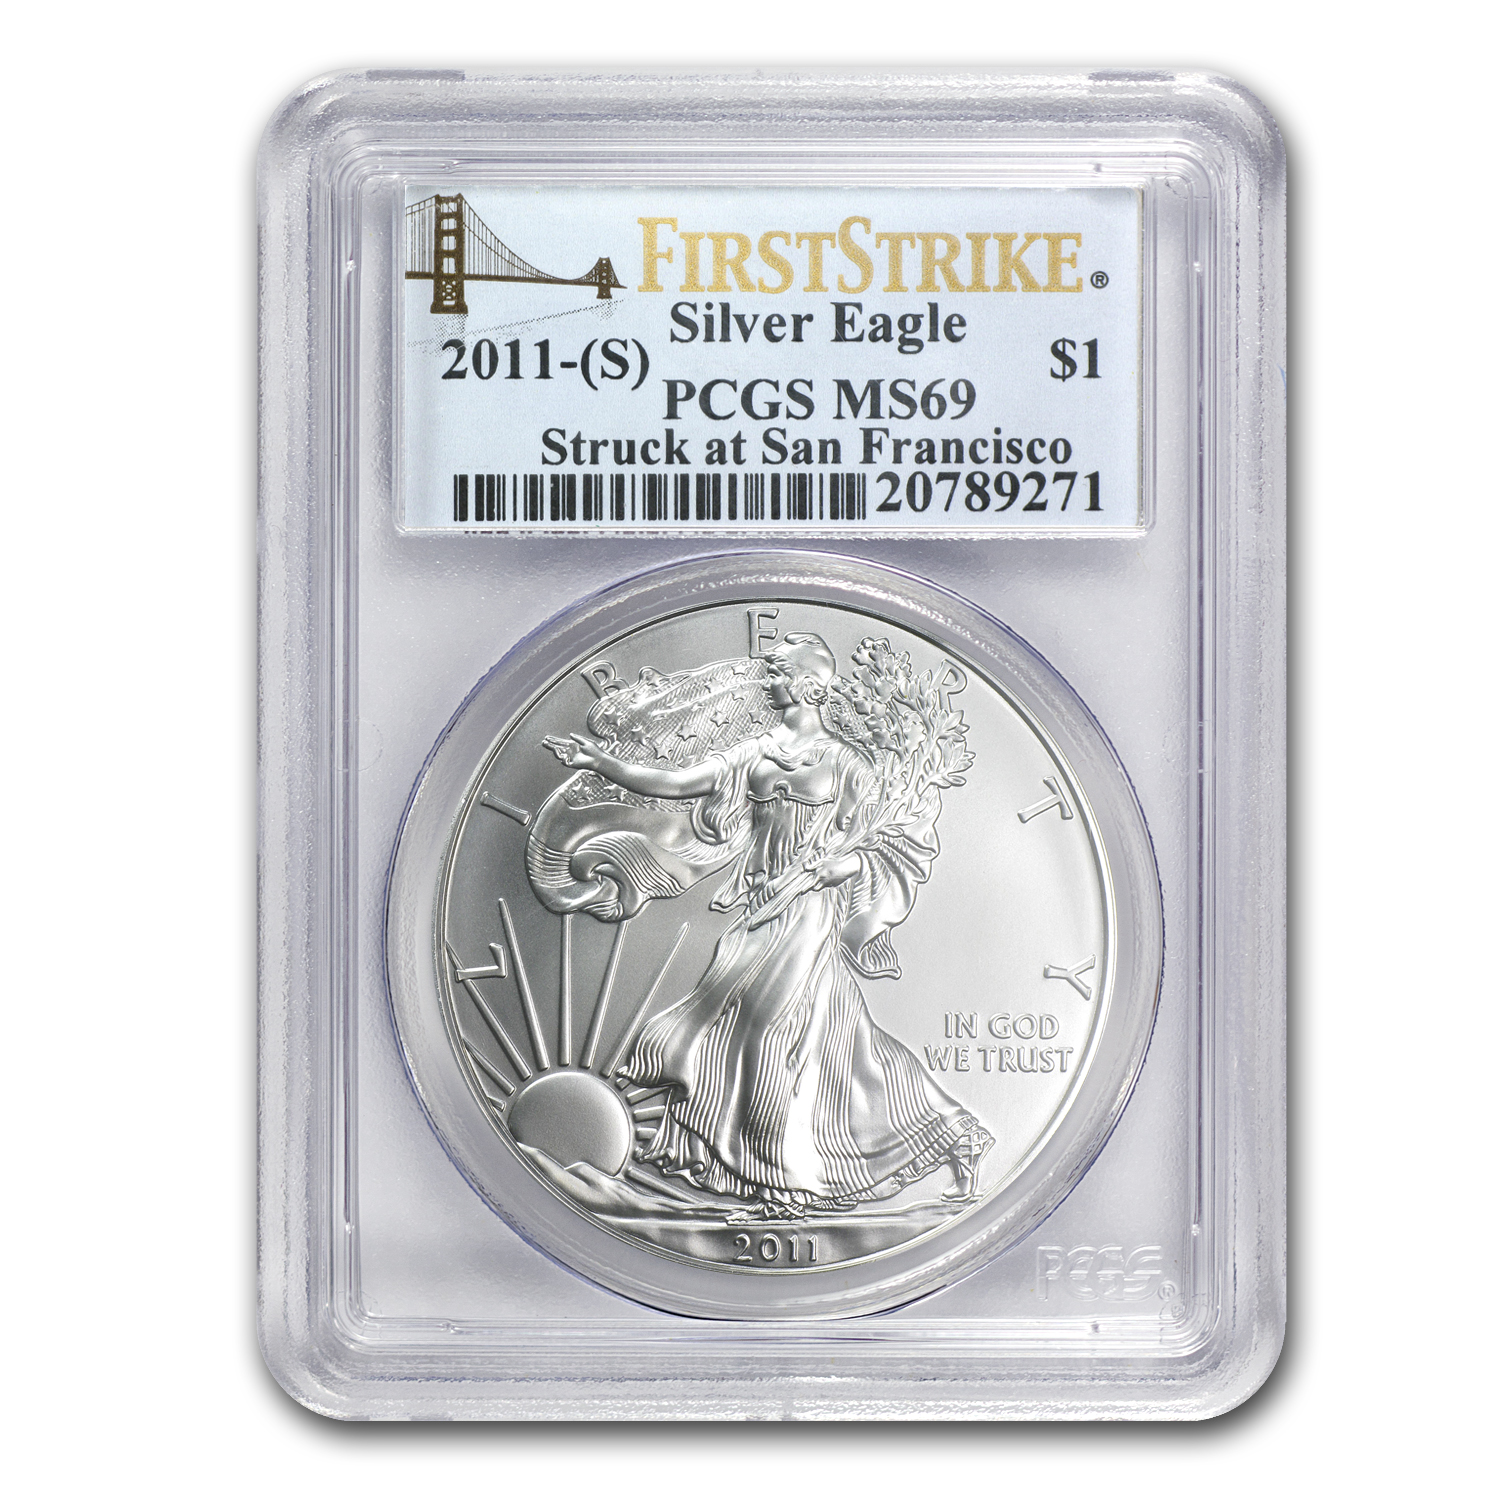 2011 (S) Silver Eagle - MS-69 PCGS - FS - Golden Gate Label